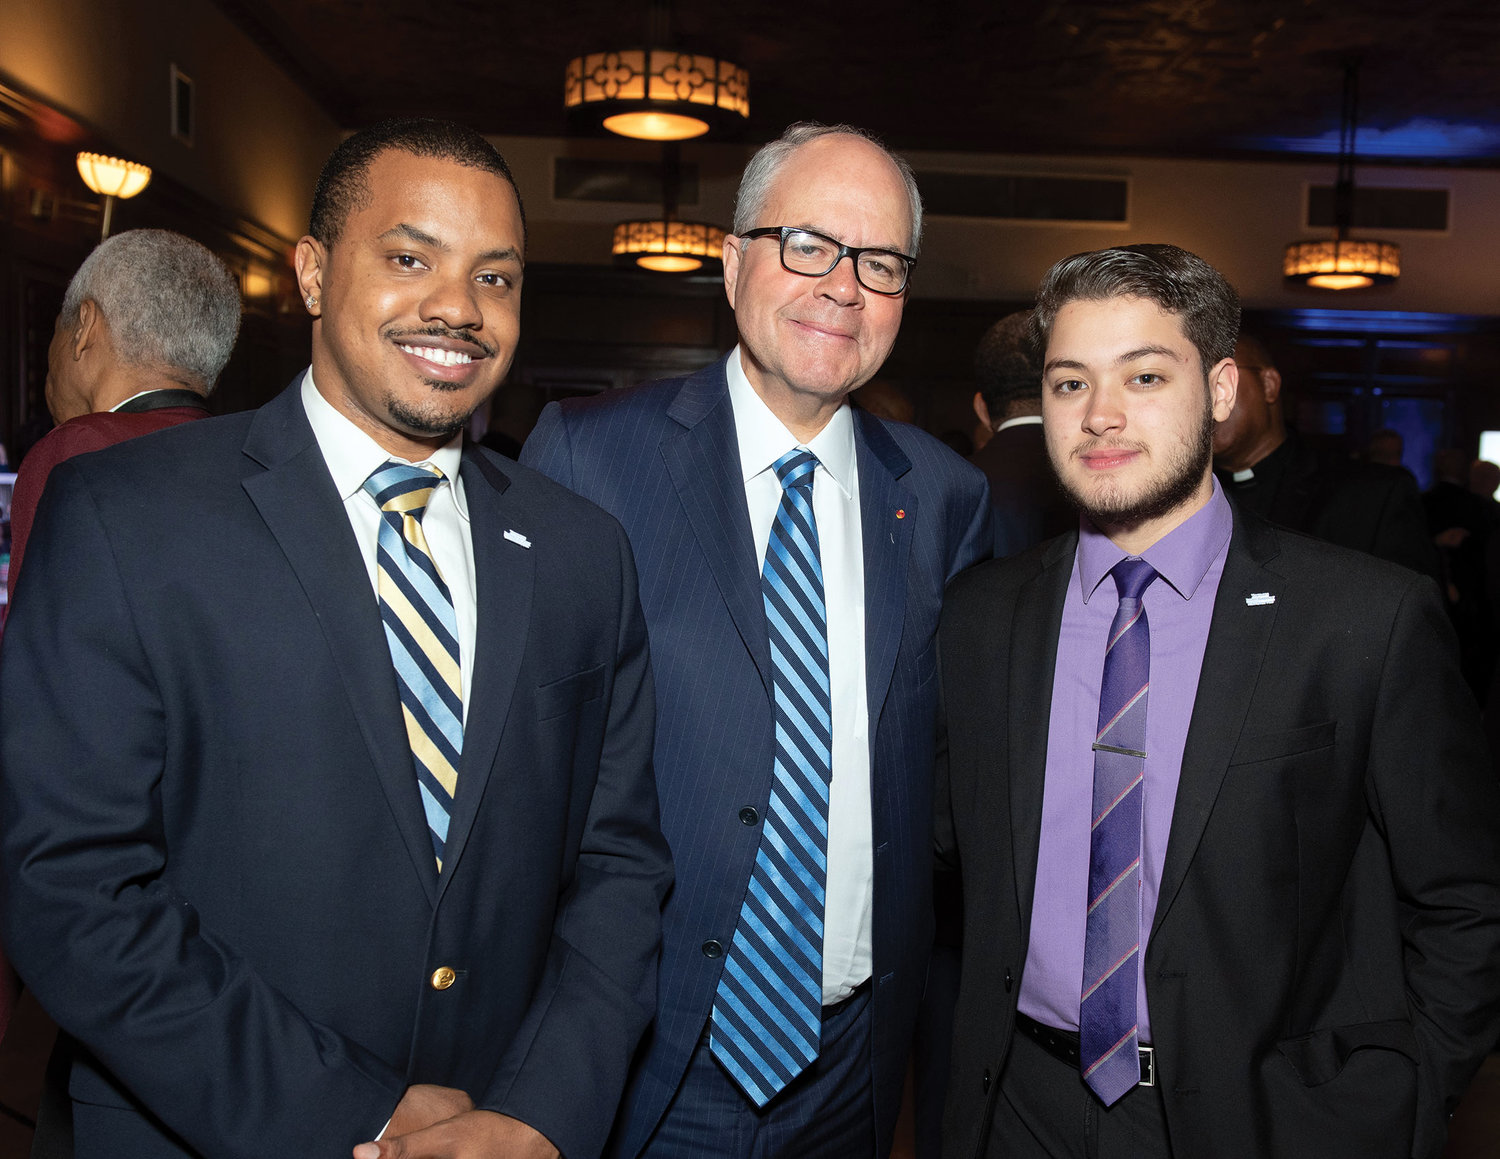 The other honoree was Peter James Johnson Jr., president of Leahey & Johnson, P.C. Johnson, center, is flanked by Samuel Riddick, left, a past recipient of the college scholarship award, and Abdul Mustafa, a current recipient.